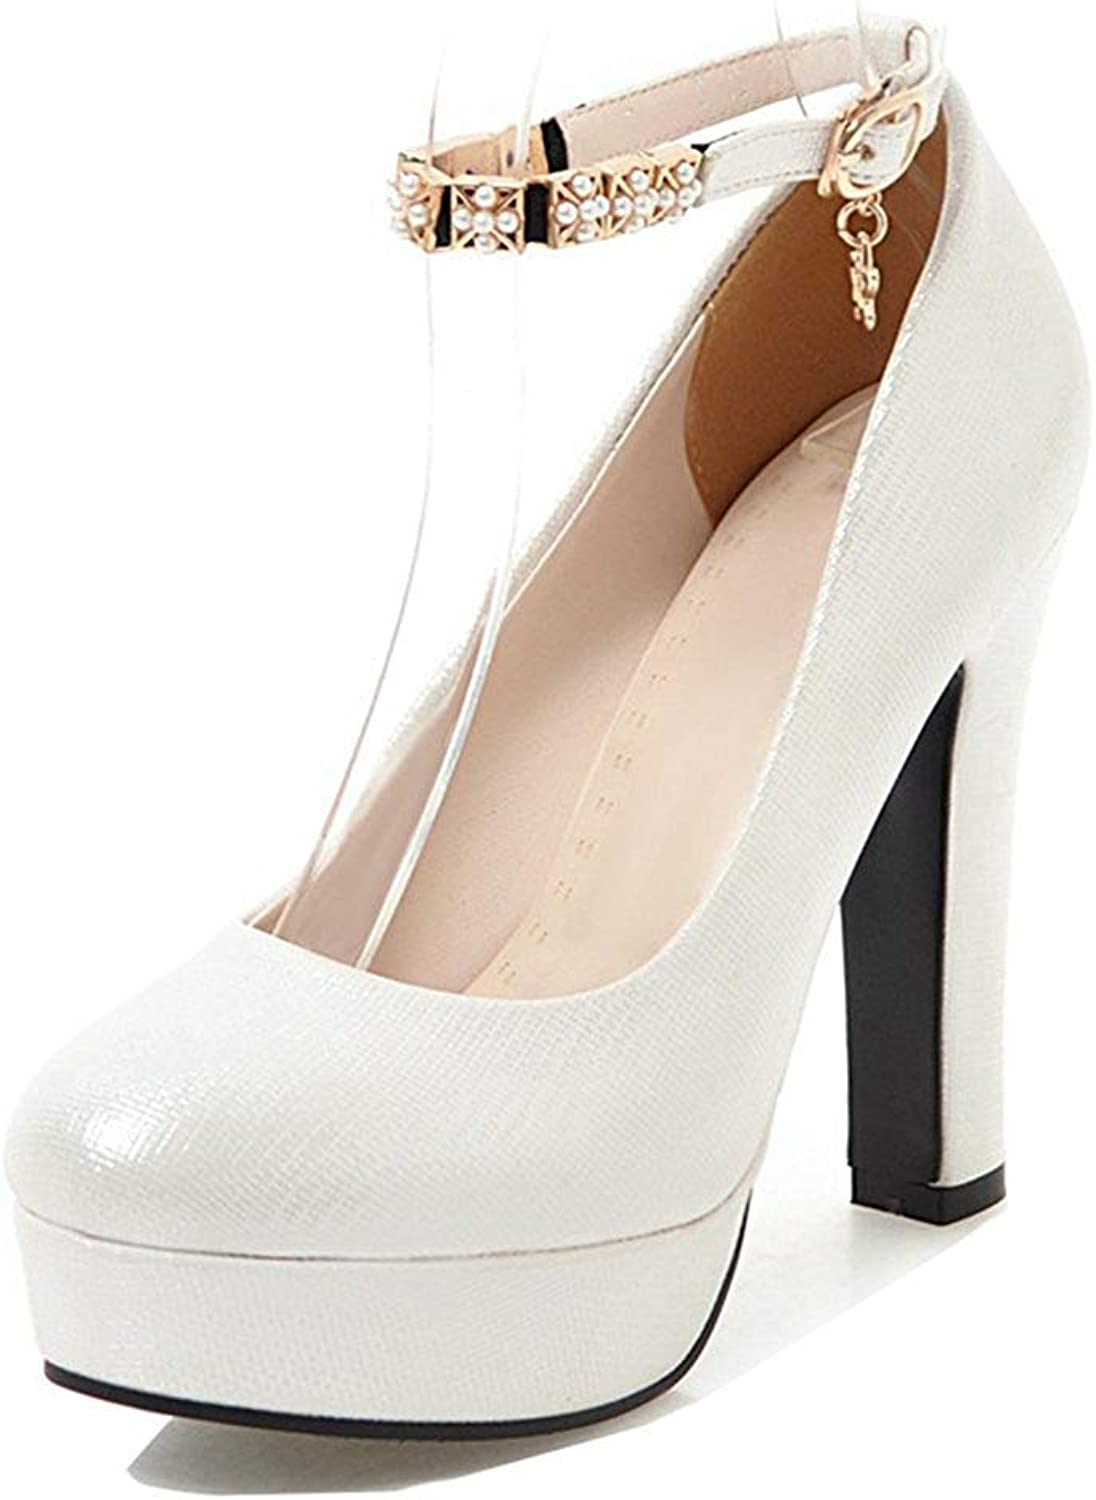 Unm Women's Round Toe Pumps with Ankle Strap - Platform High Heel Buckled - Chunky Evening shoes